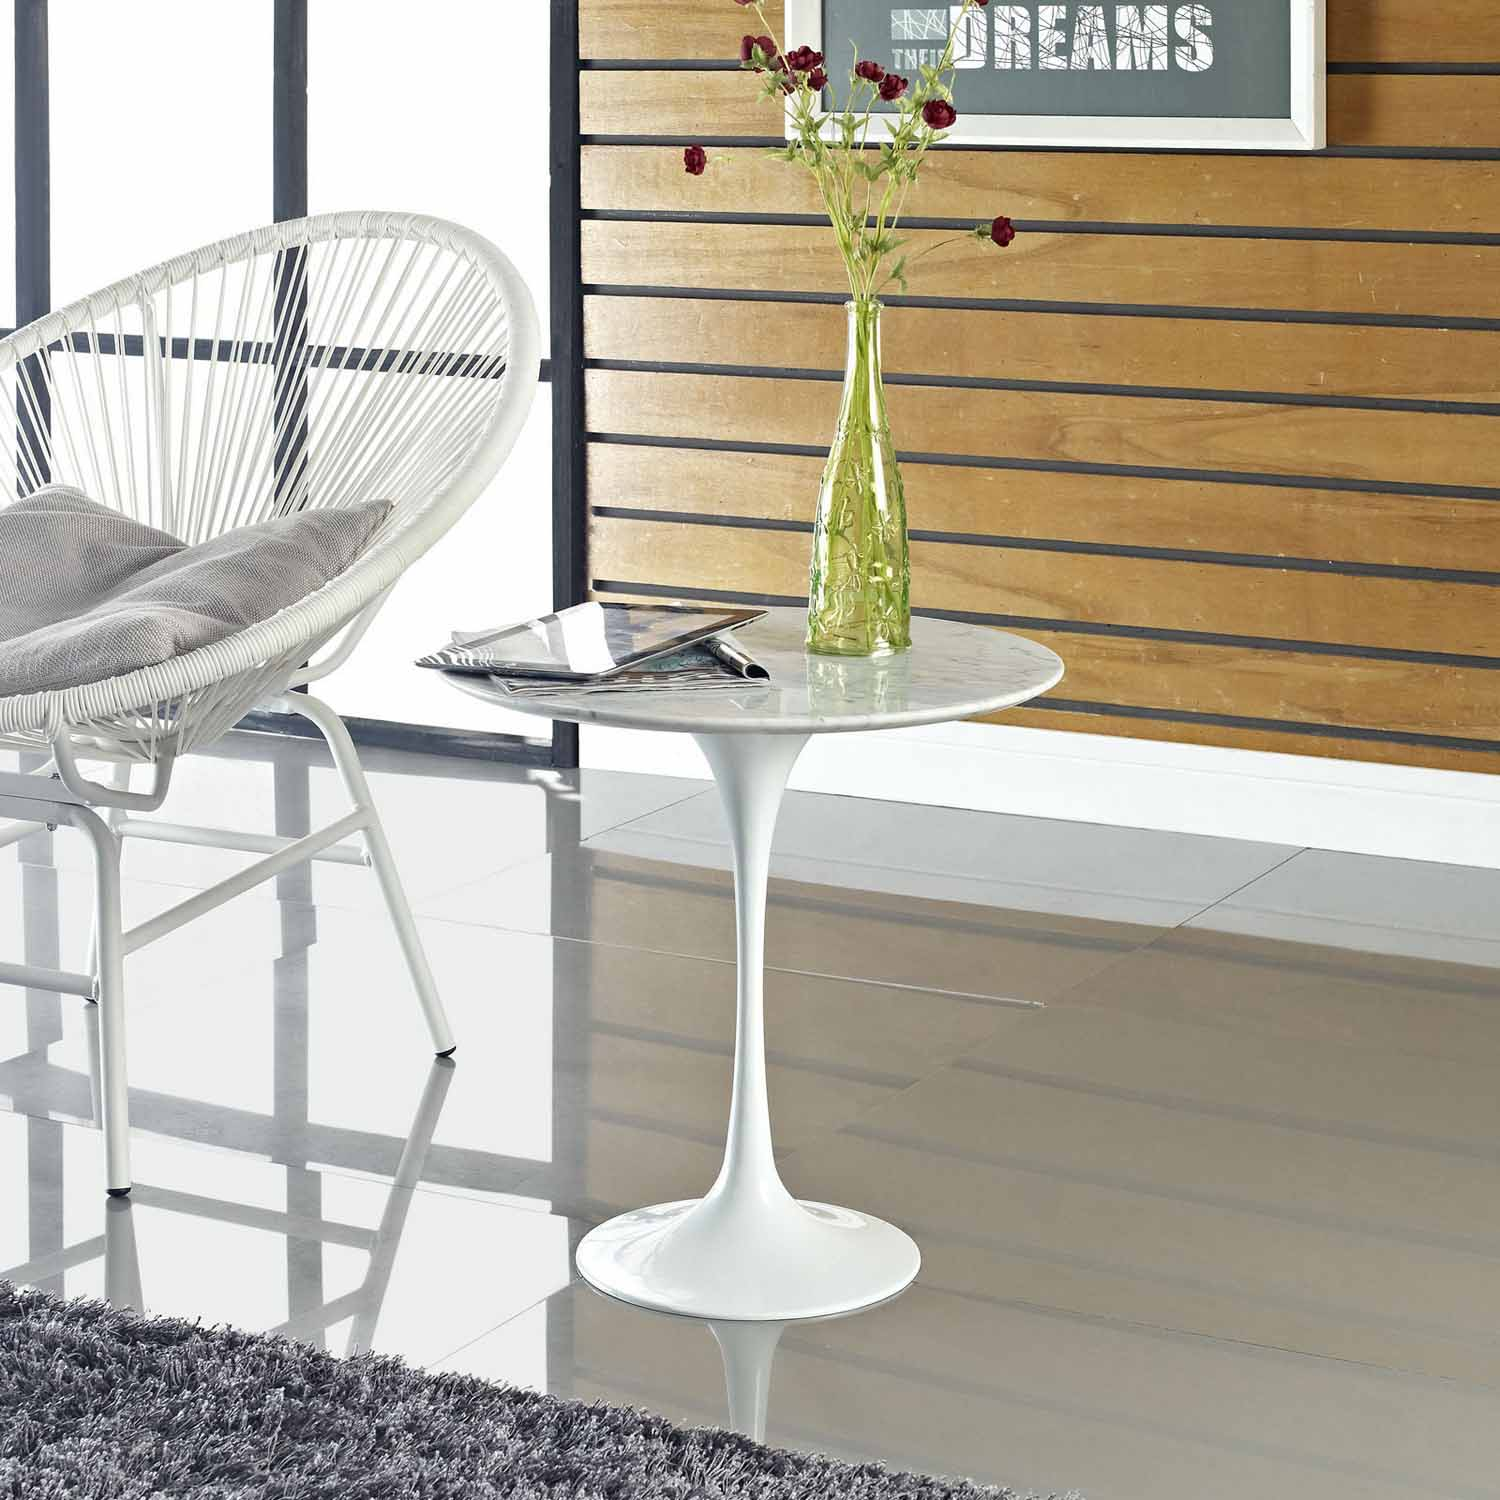 Modway Lippa 20 Marble Side Table - White